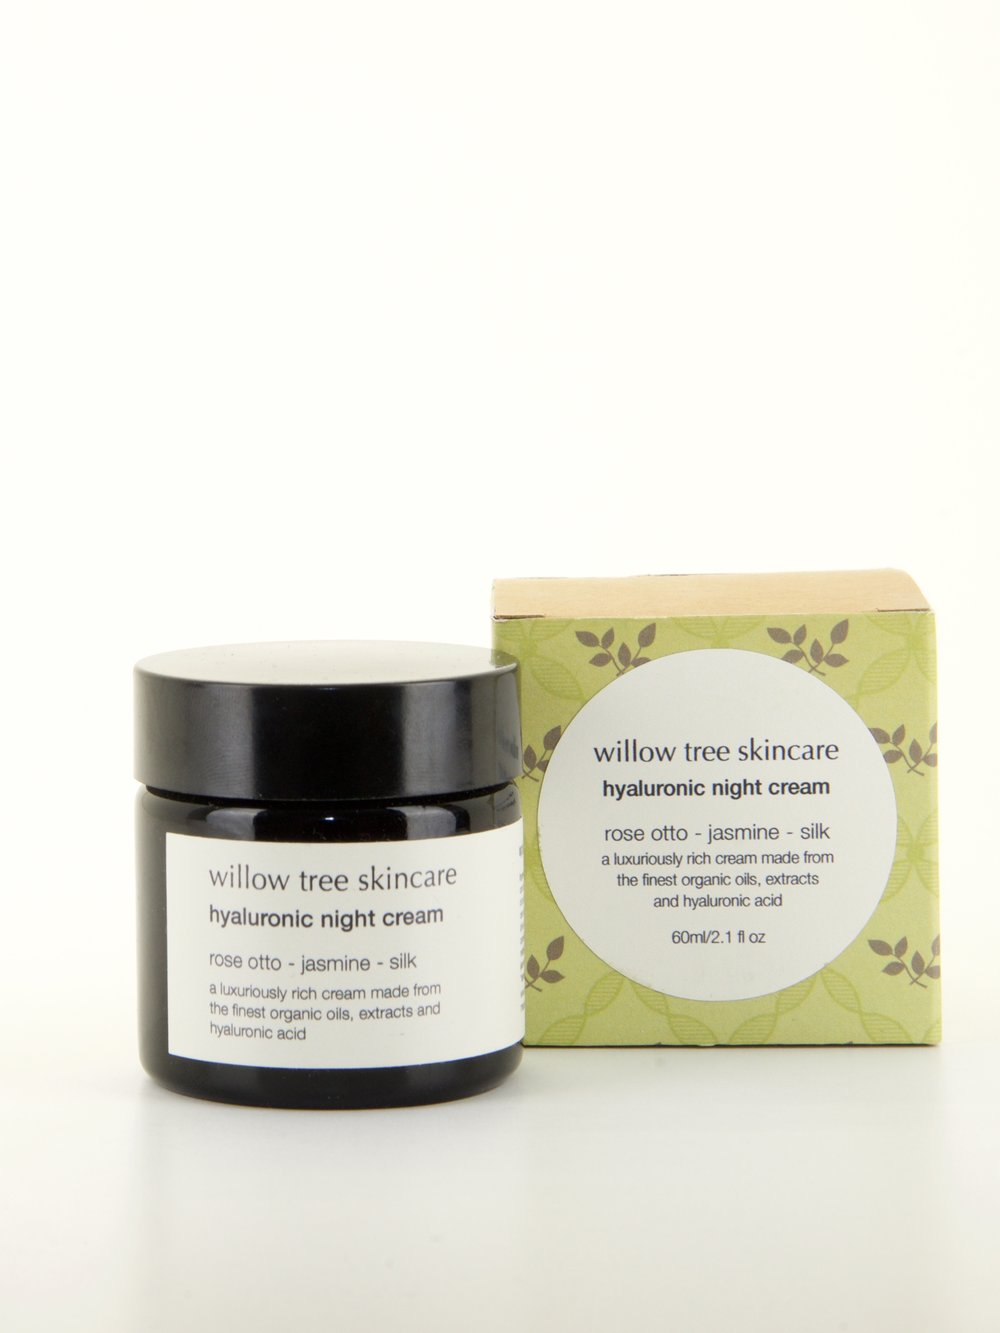 Willow Tree Skincare Hyaluronic Night Cream £17